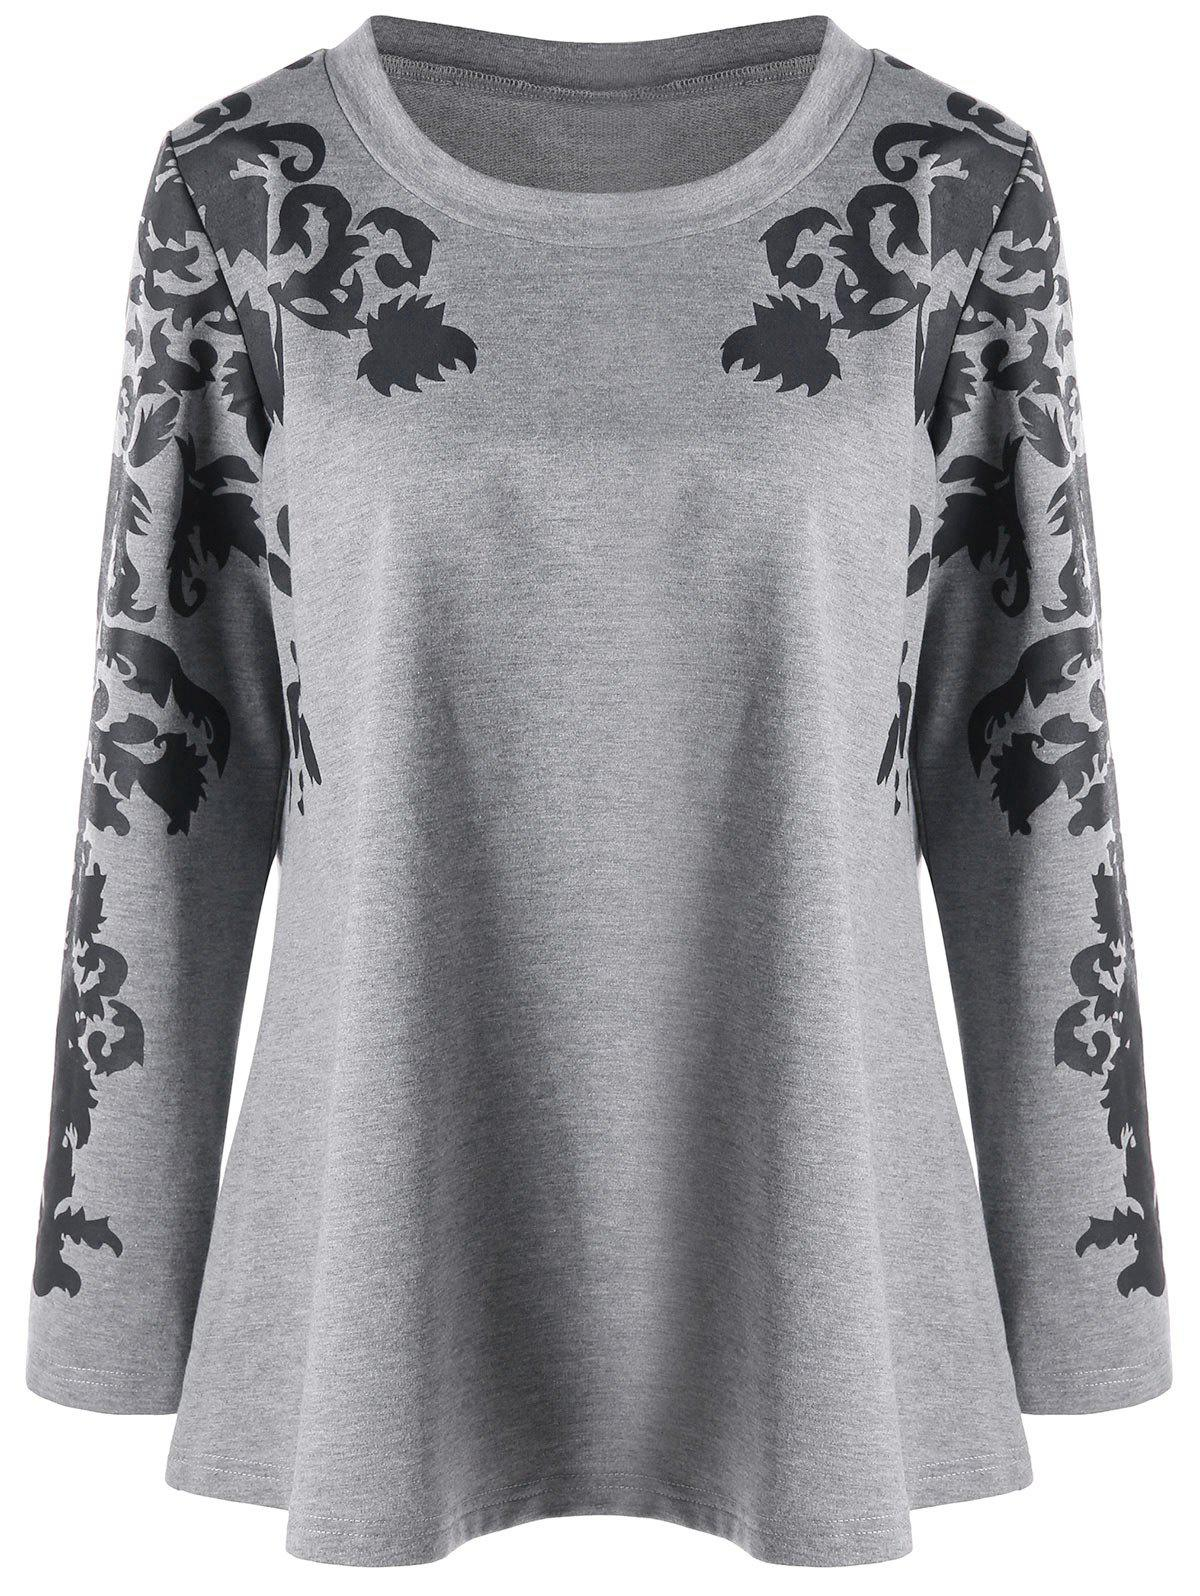 Discount Raglan Sleeve Plus Size Print Top